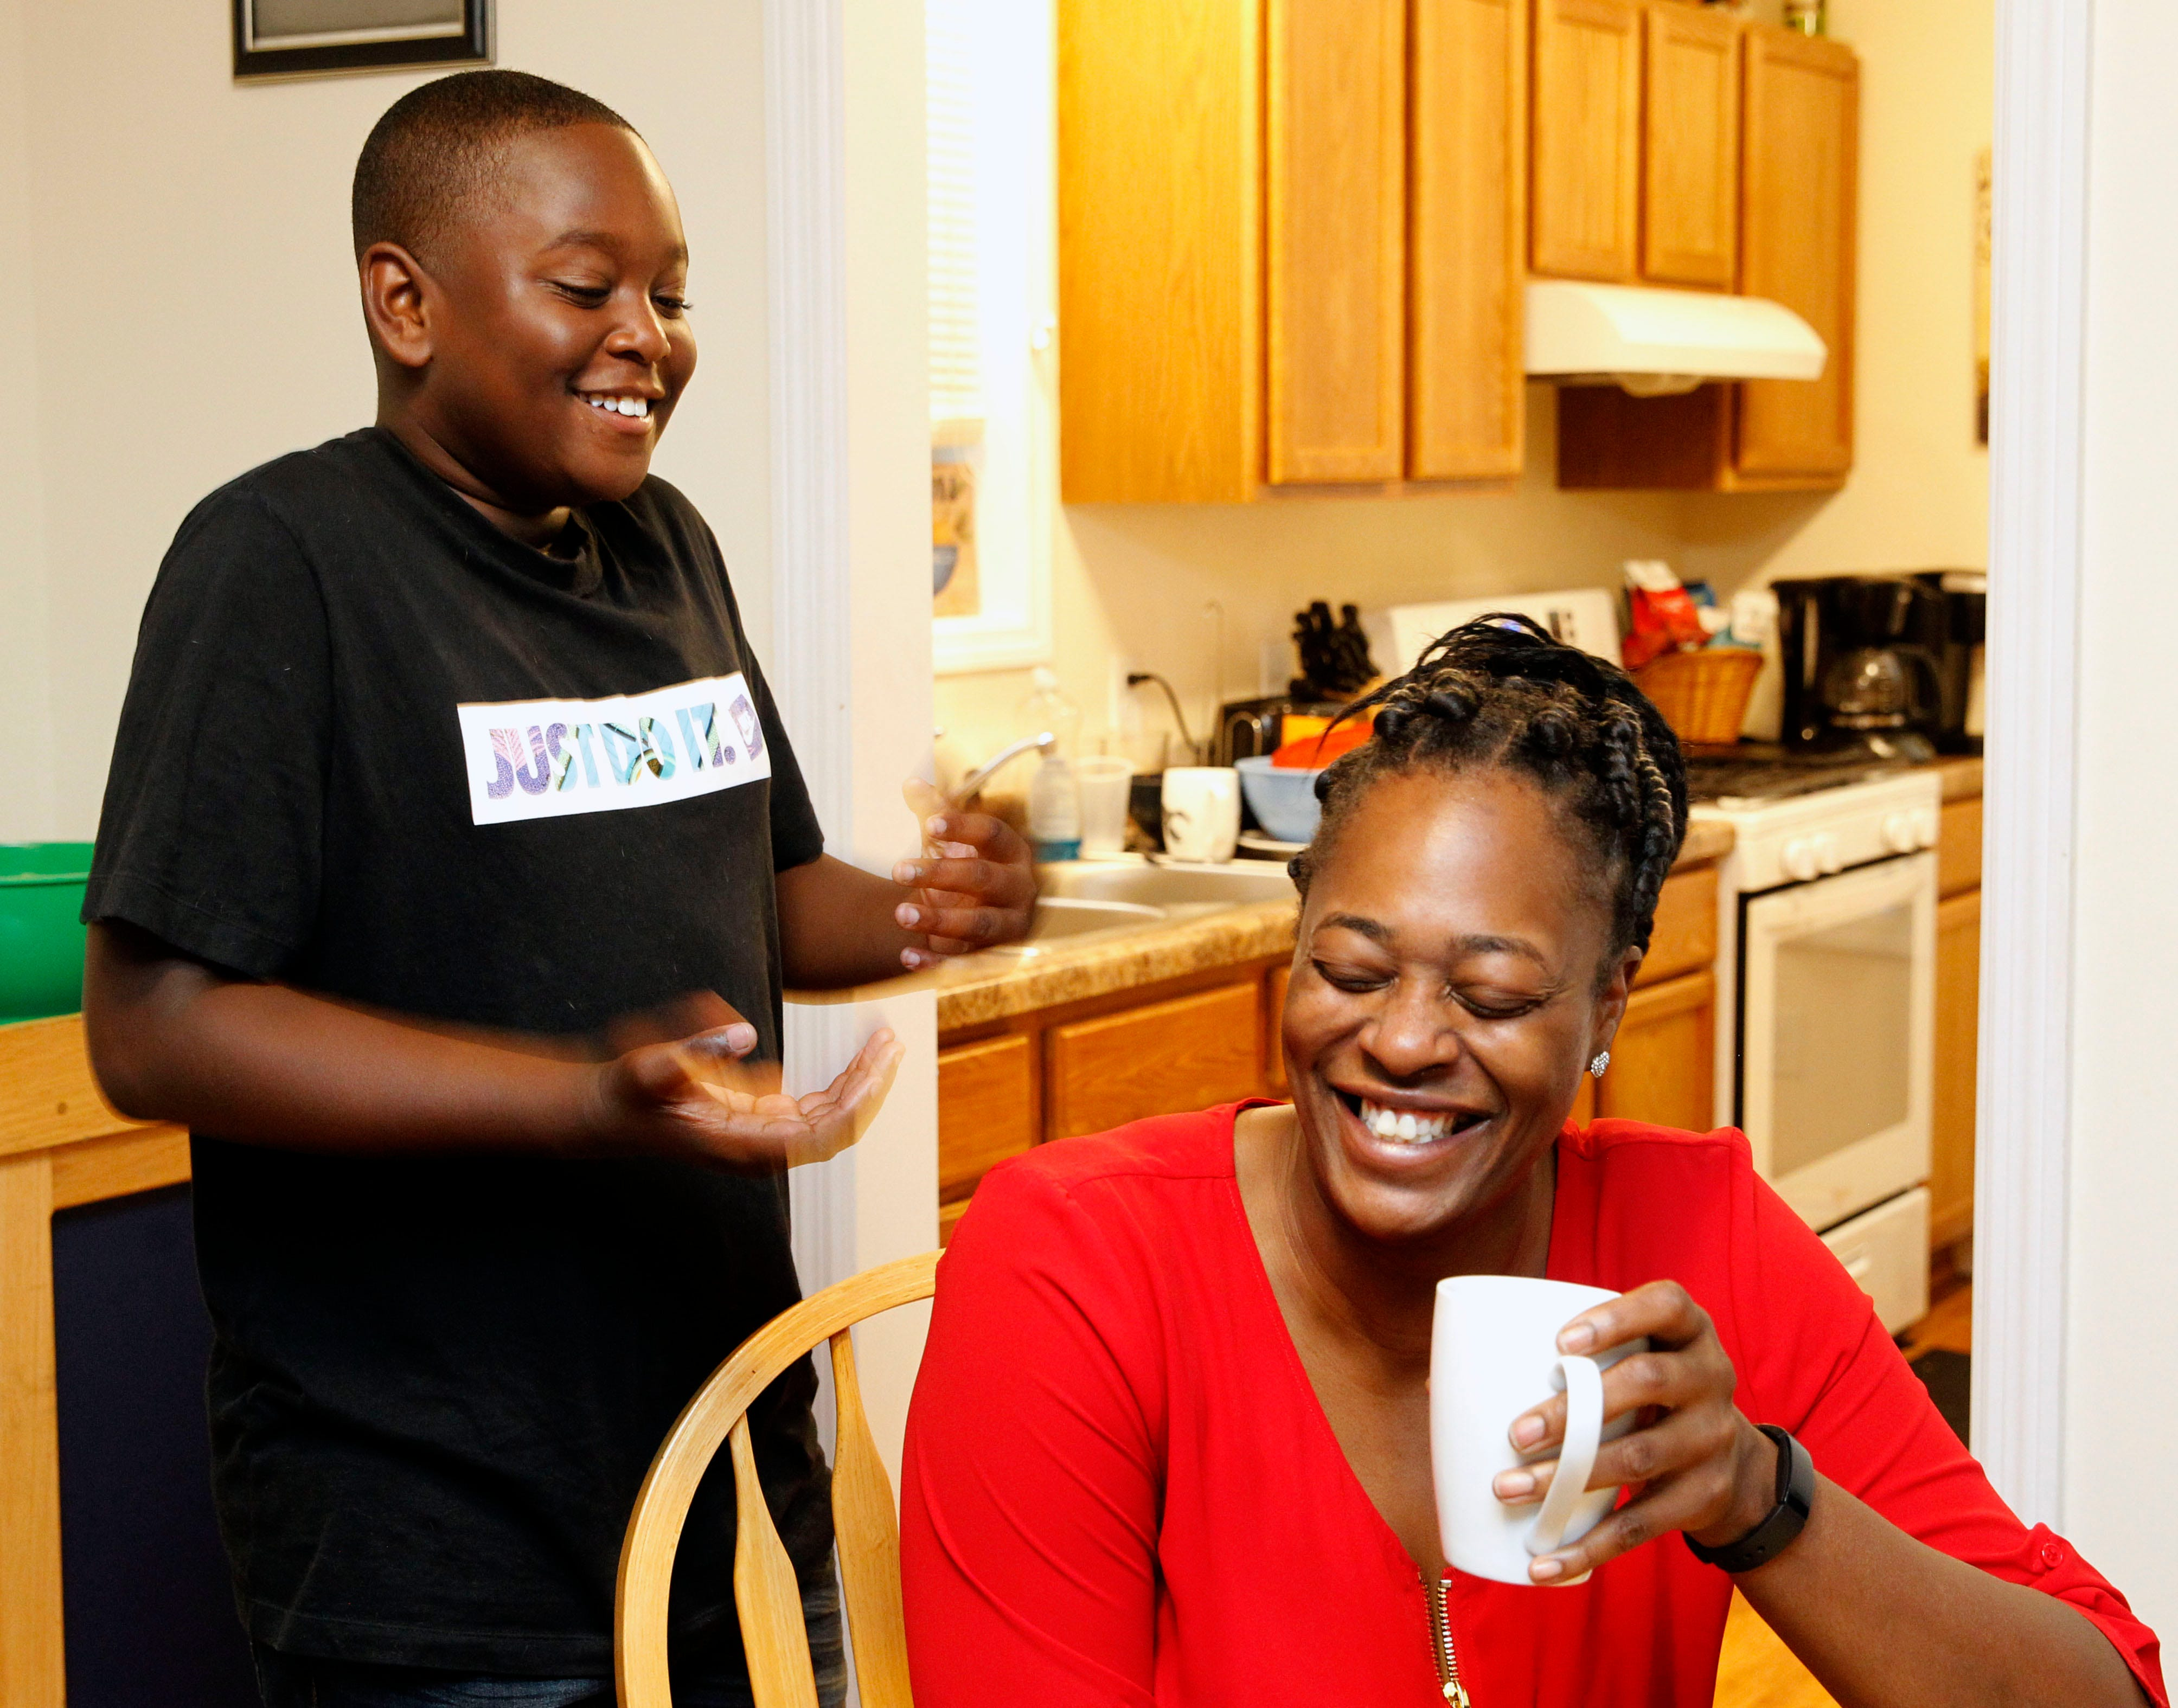 Matthias Jeffrie enjoys a moment with his mother LaVera Jeffrie at their St. Paul home on Sept. 30.  Jeffrie and her son have been in their Habitat for Humanity home since 2017. She and Matthias collaborated on how to decorate it.